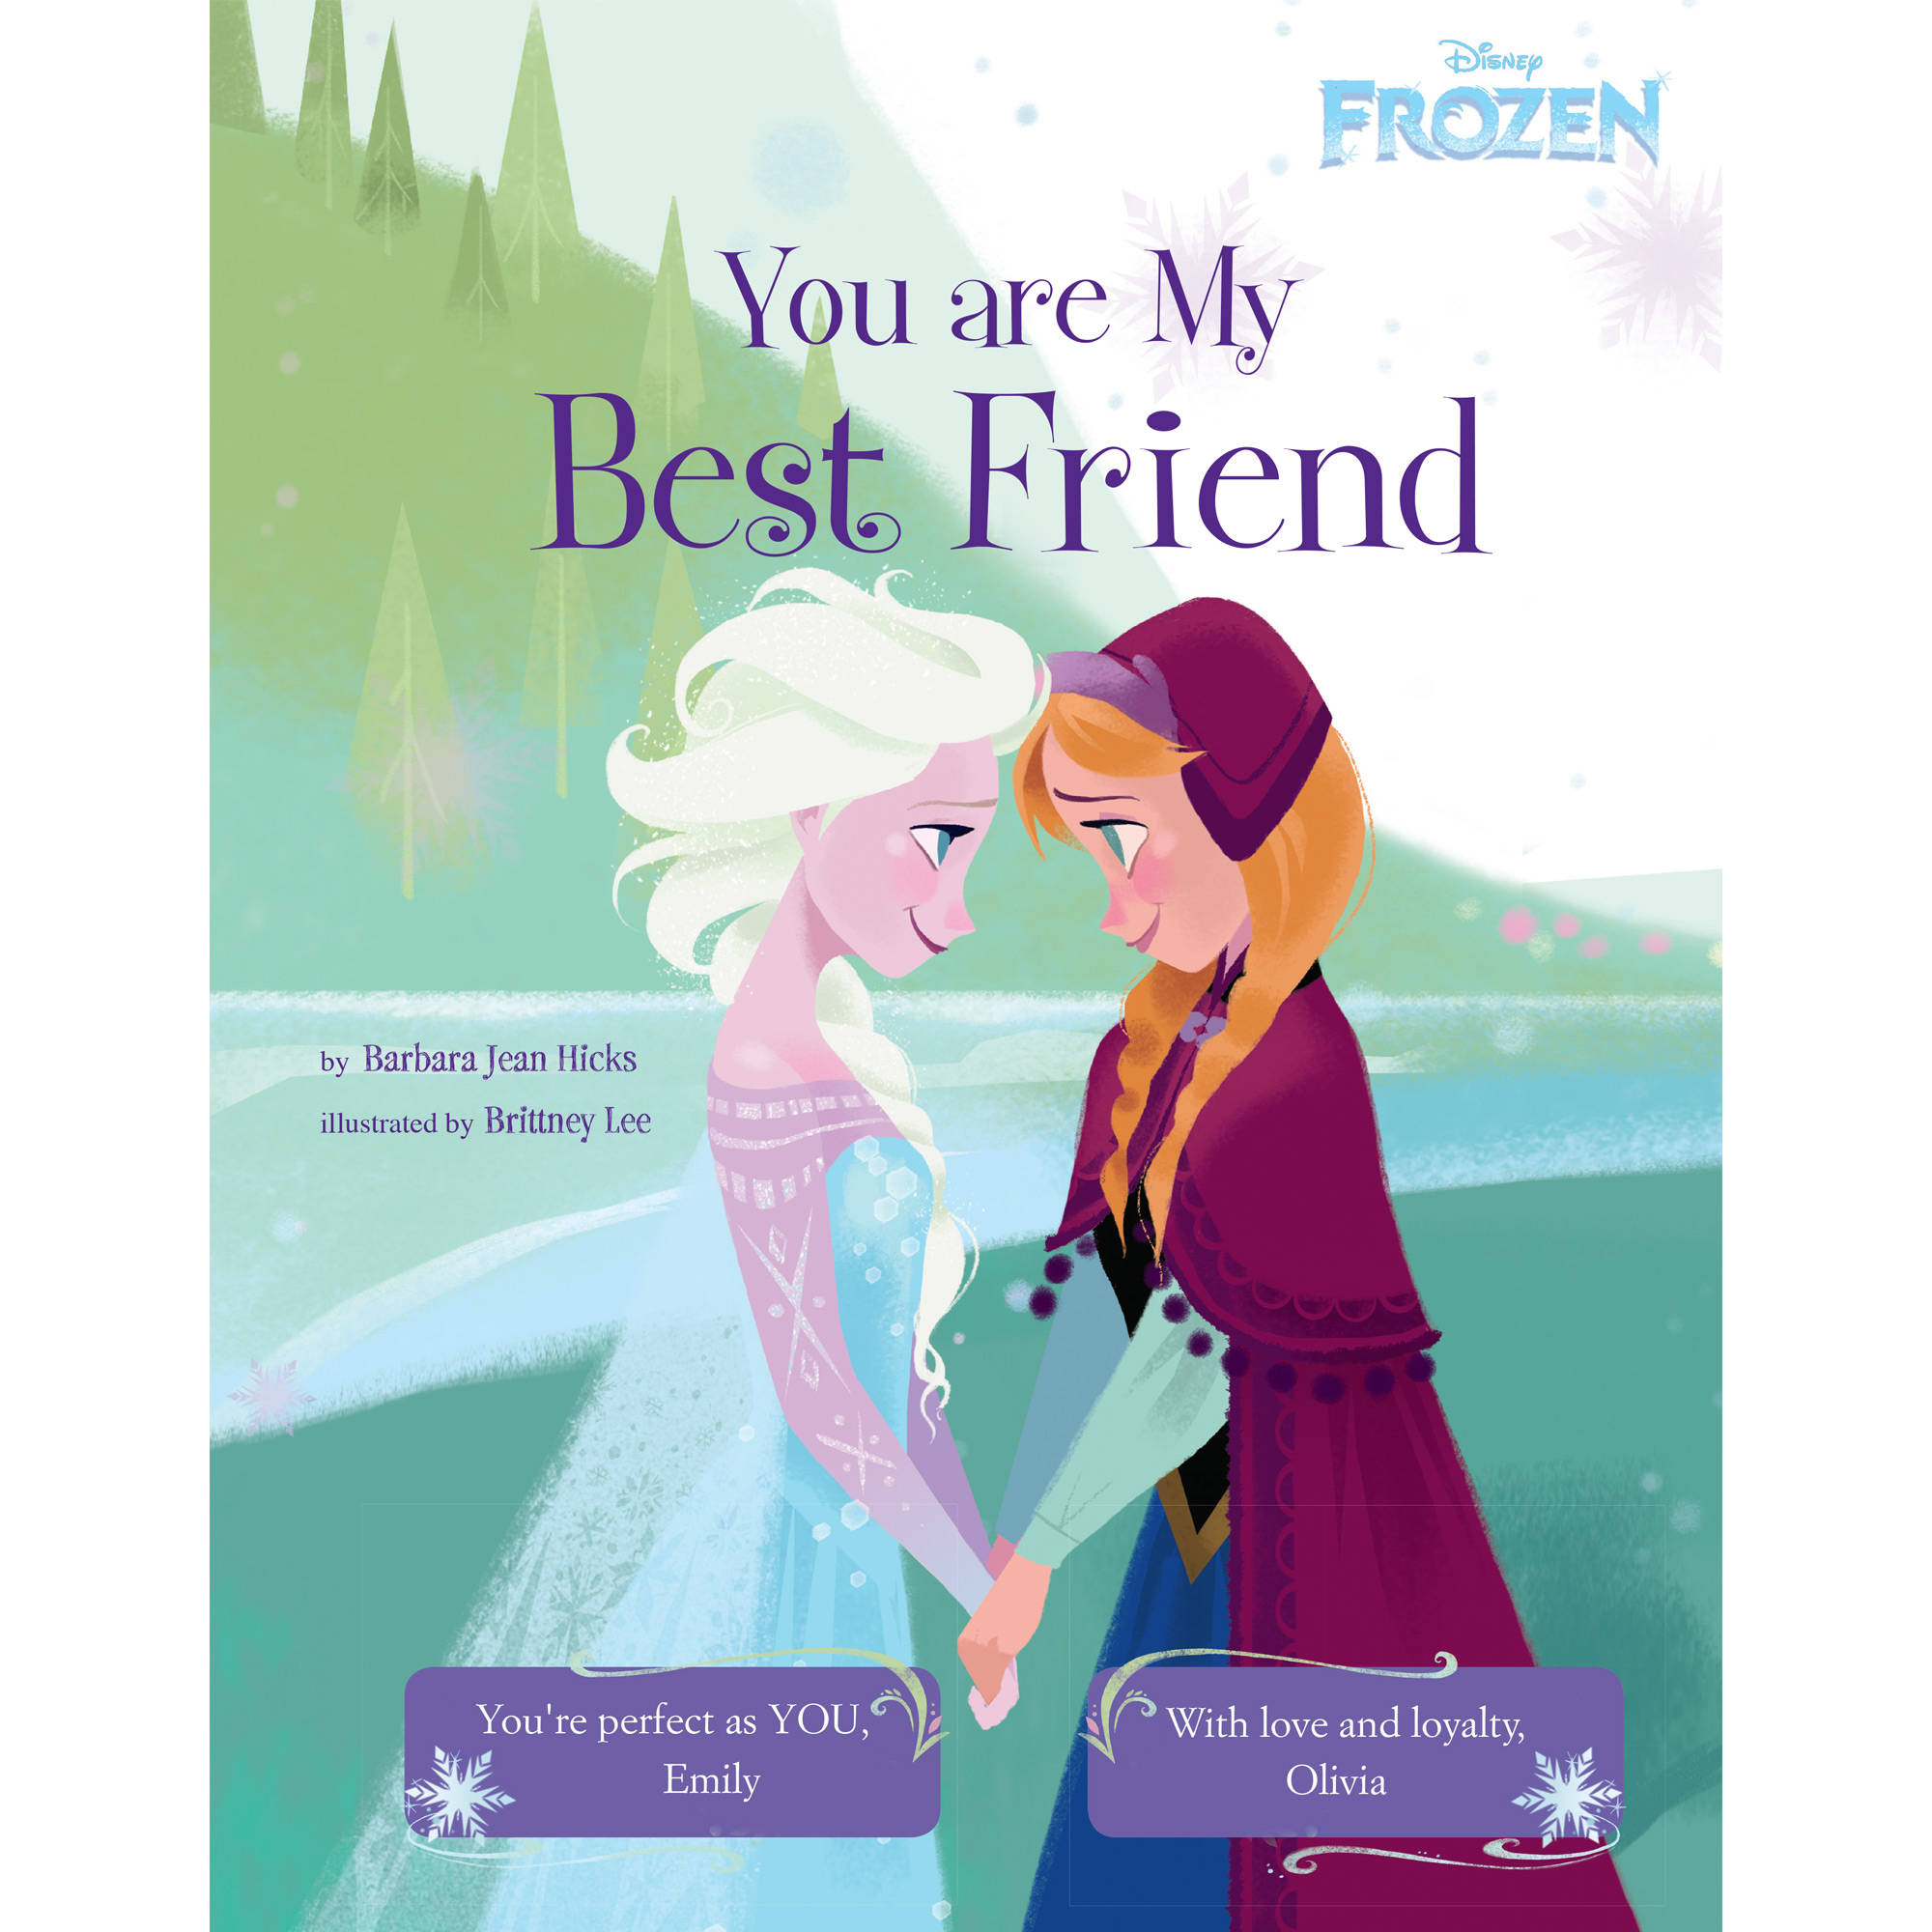 Personalized Book - Disney's Frozen: You Are My Best Friend